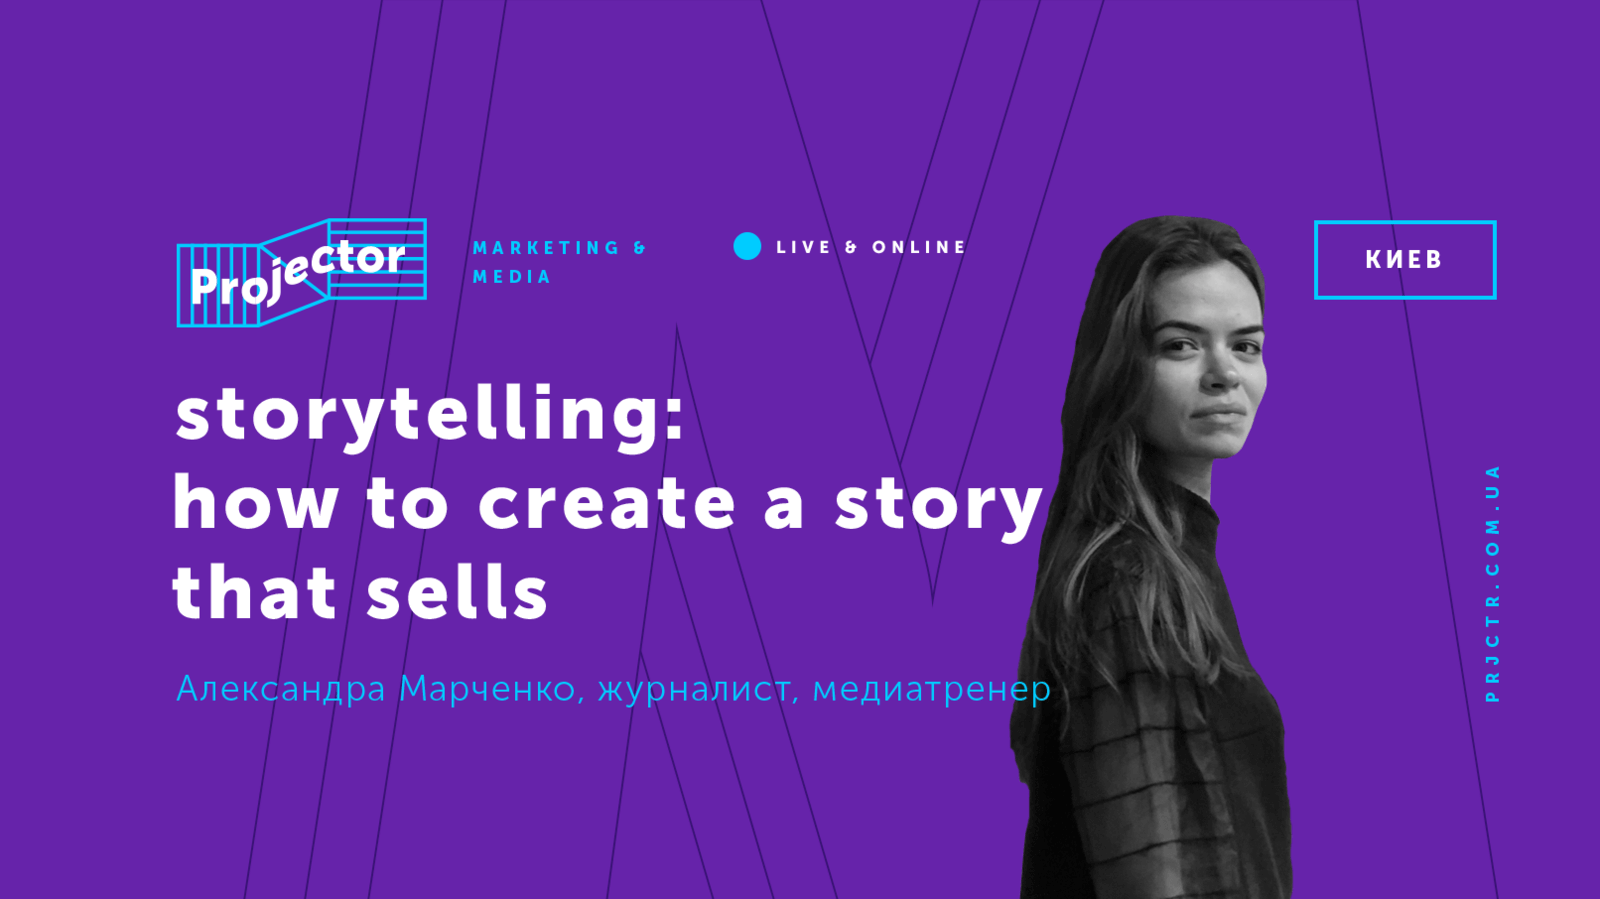 Storytelling: how to create a story that sells